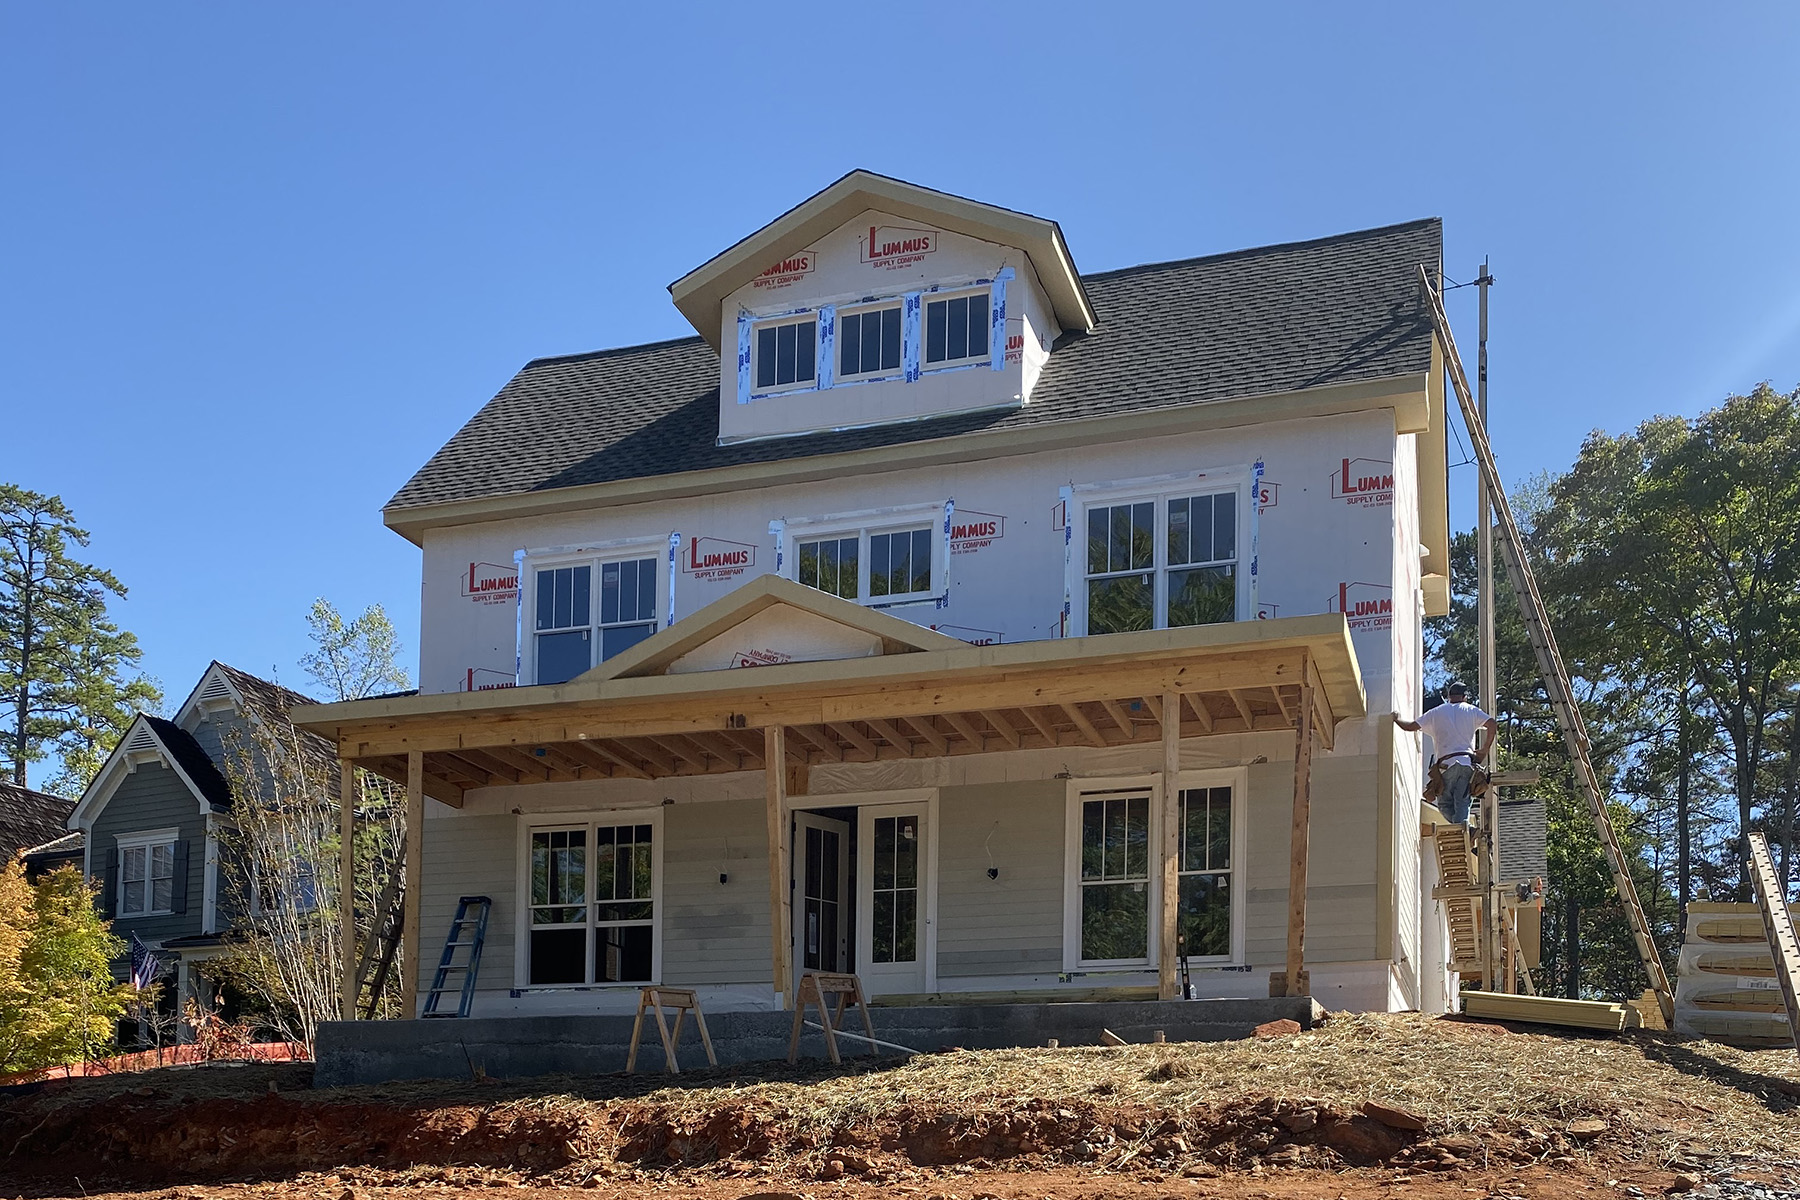 Single Family Homes for Sale at Stunning Craftsman-style new construction in Chestatee 24 Fieldstone Court, Dawsonville, Georgia 30534 United States